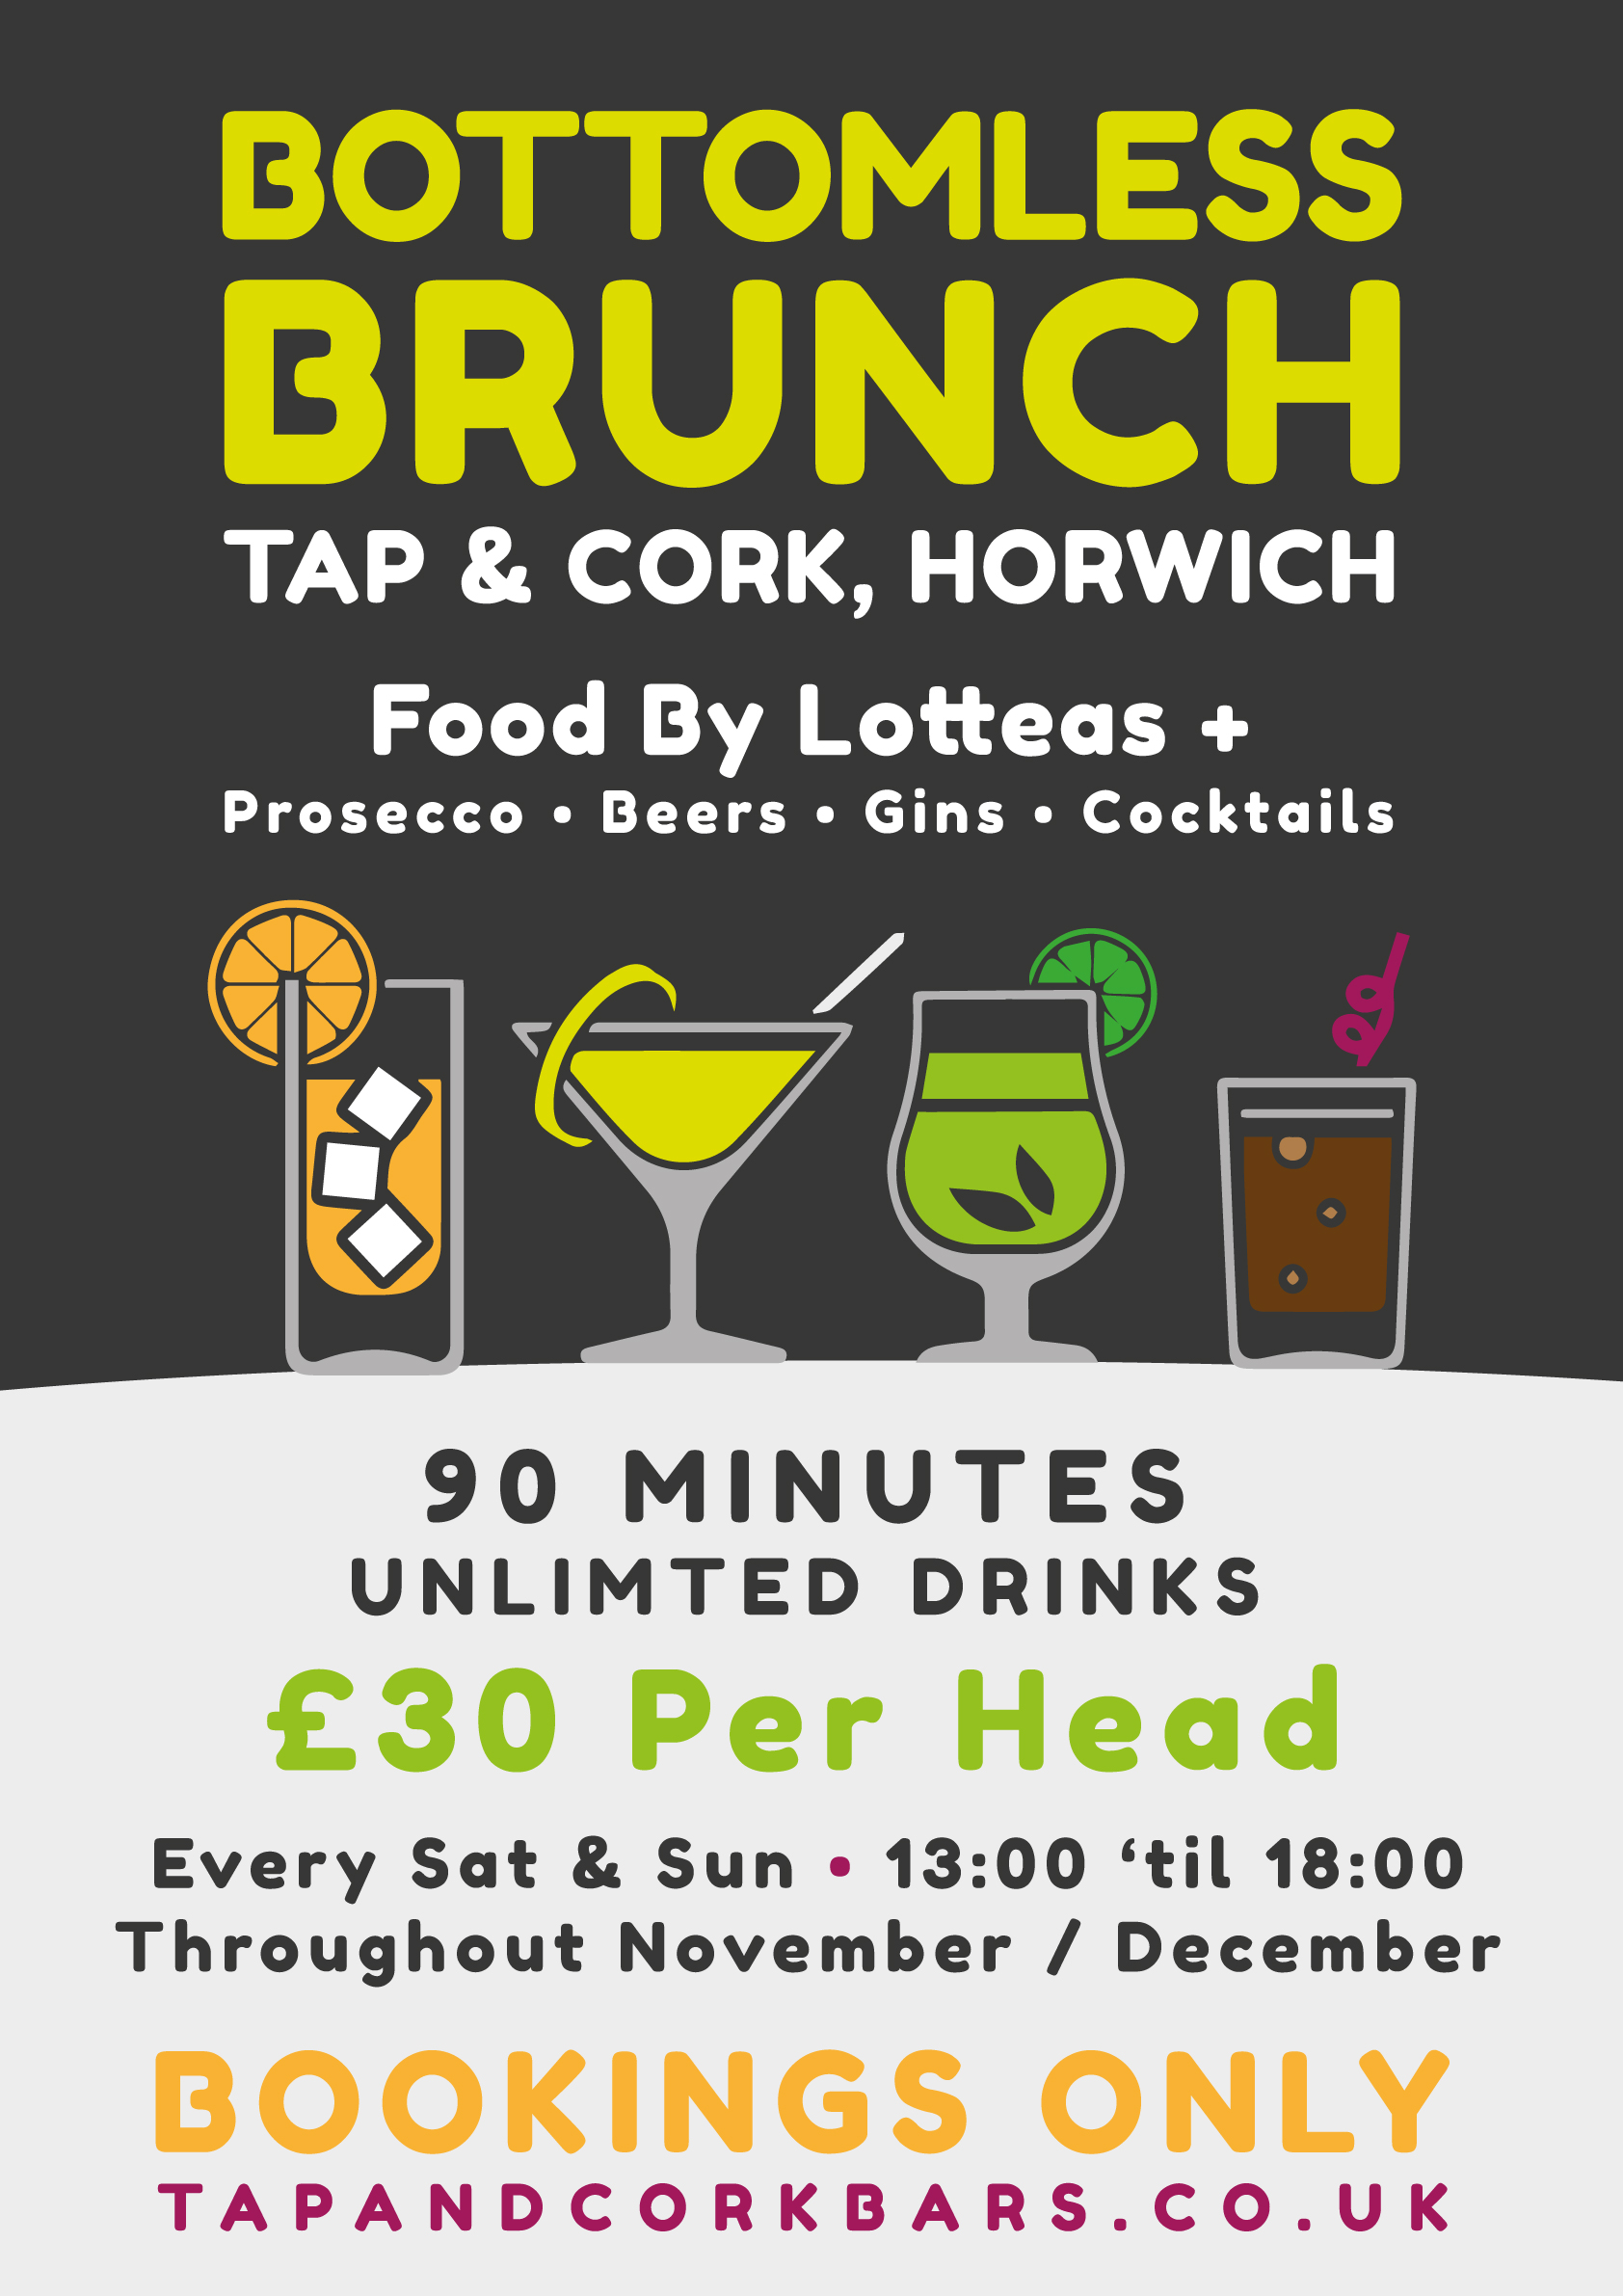 Bottomless Brunch at The Tap and Cork, Horwich